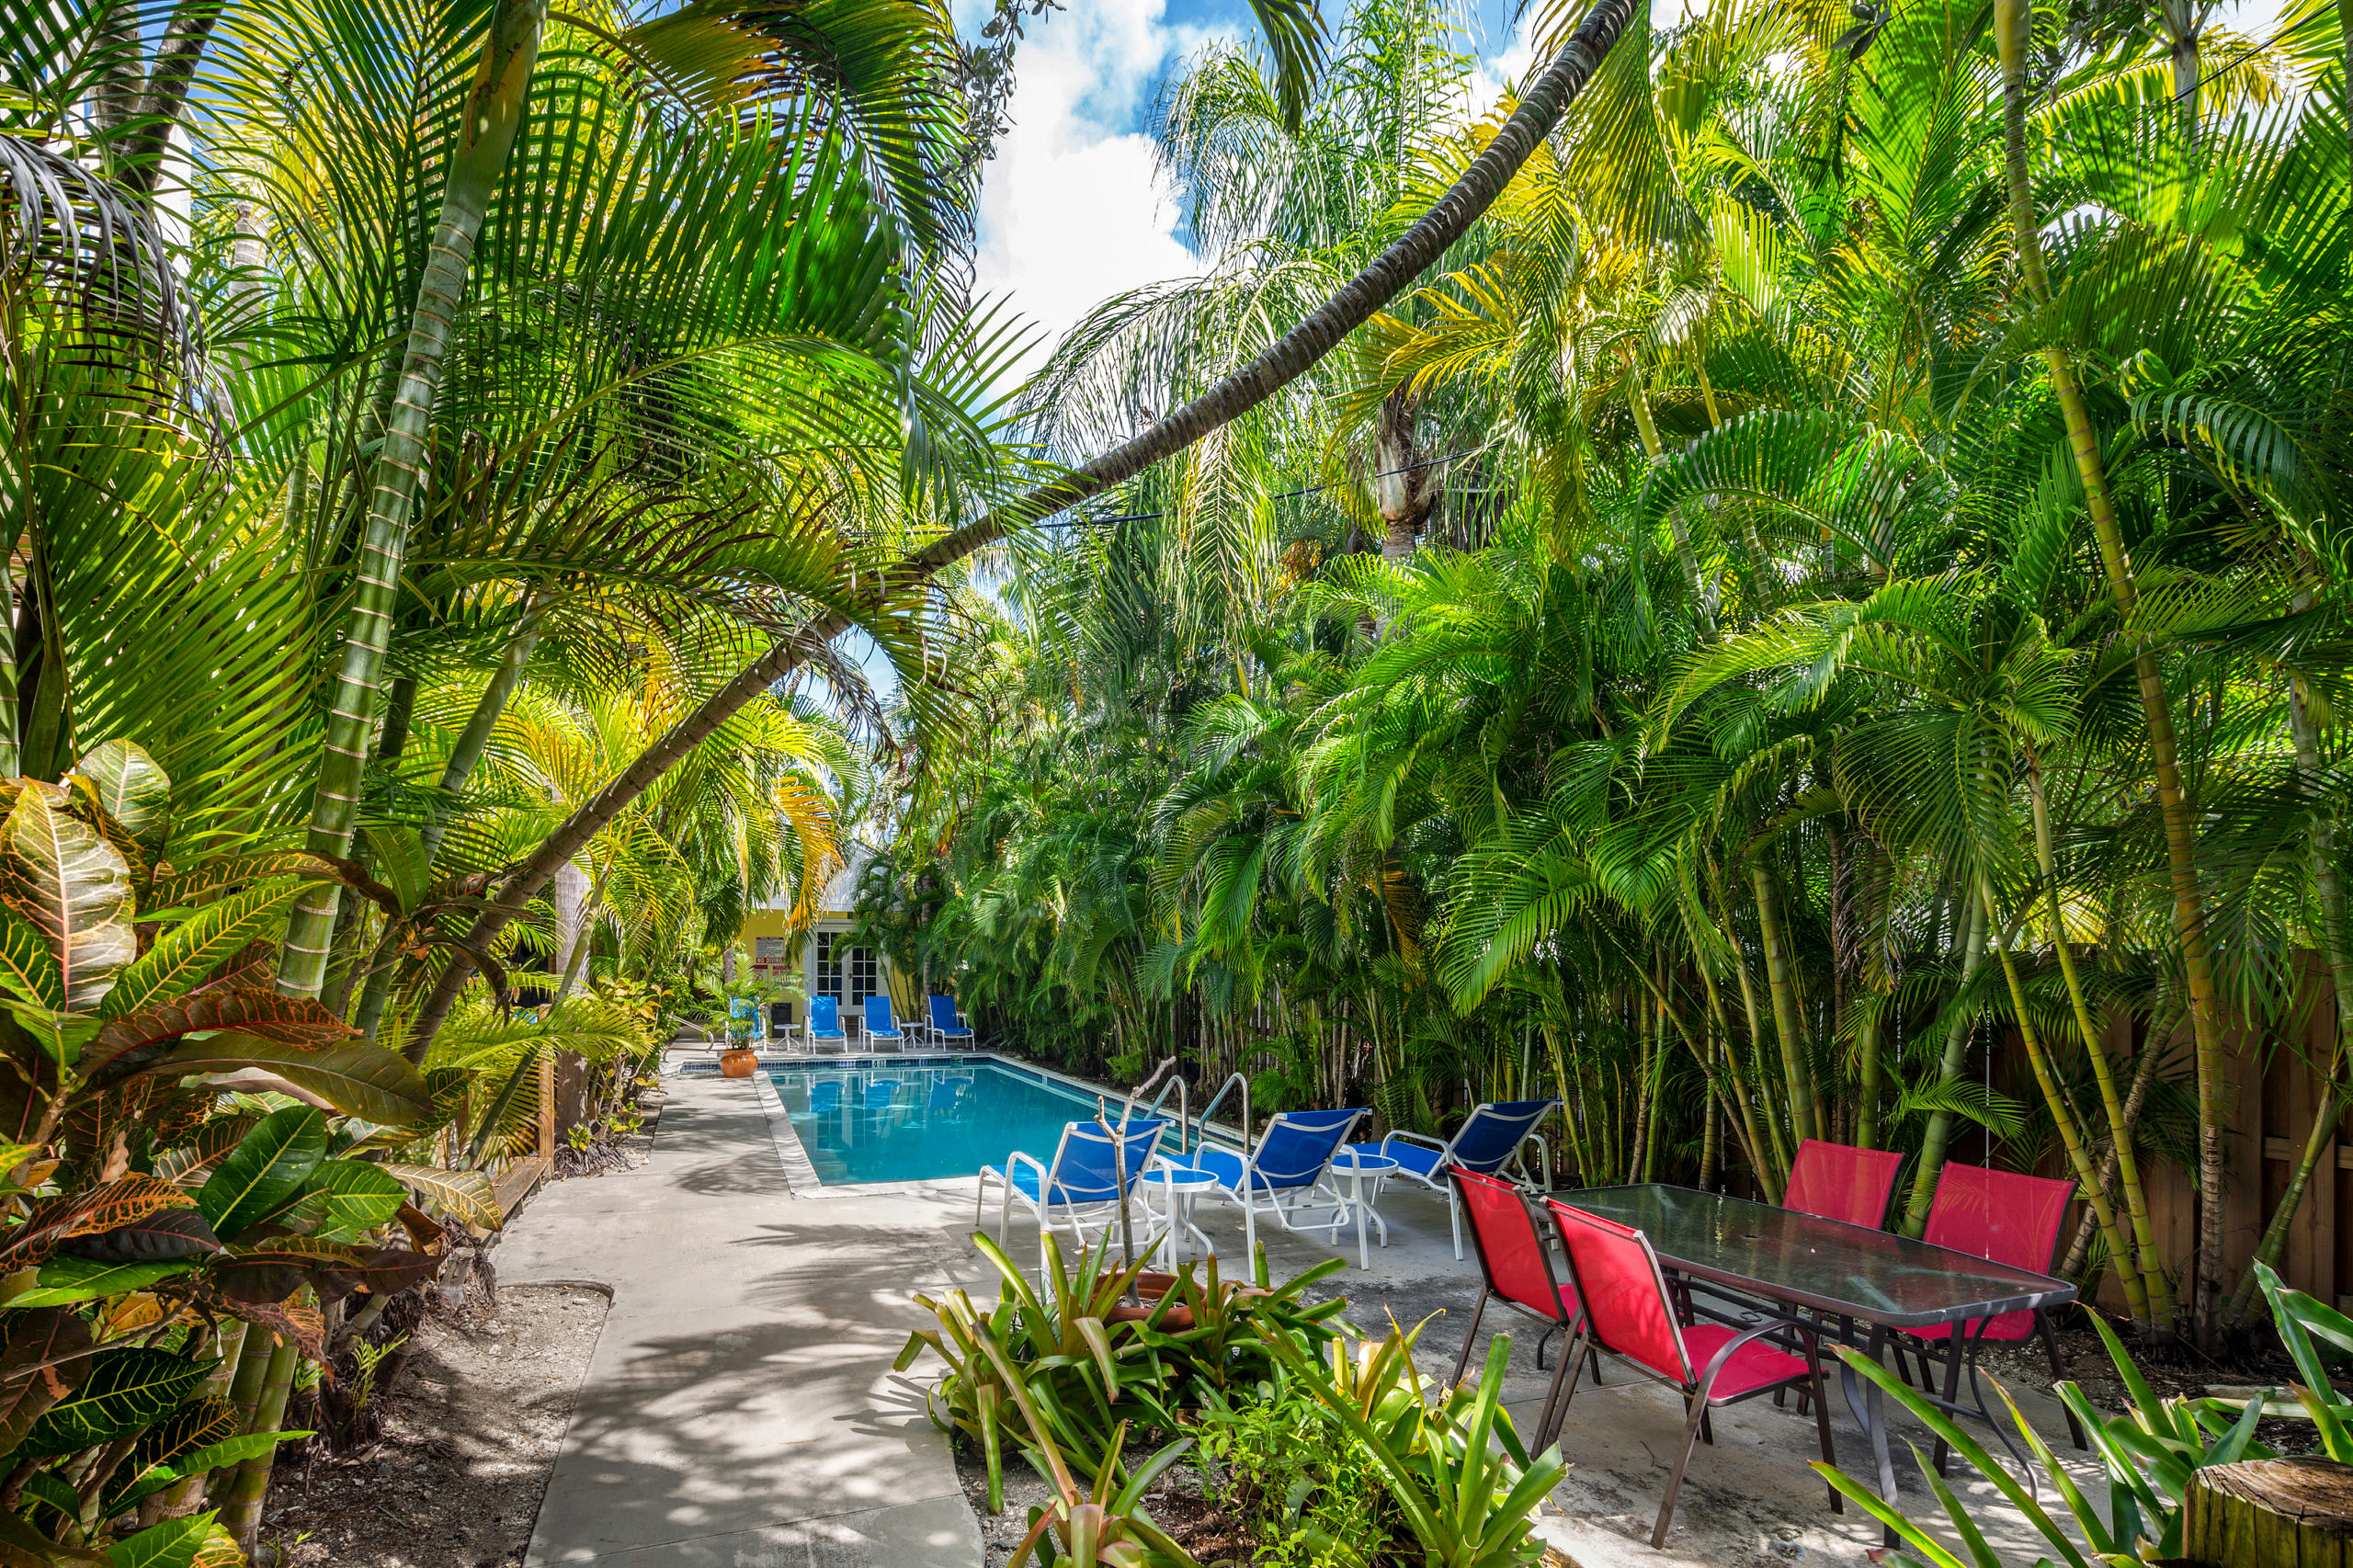 812 South St. #4, Key West_Pool View 1